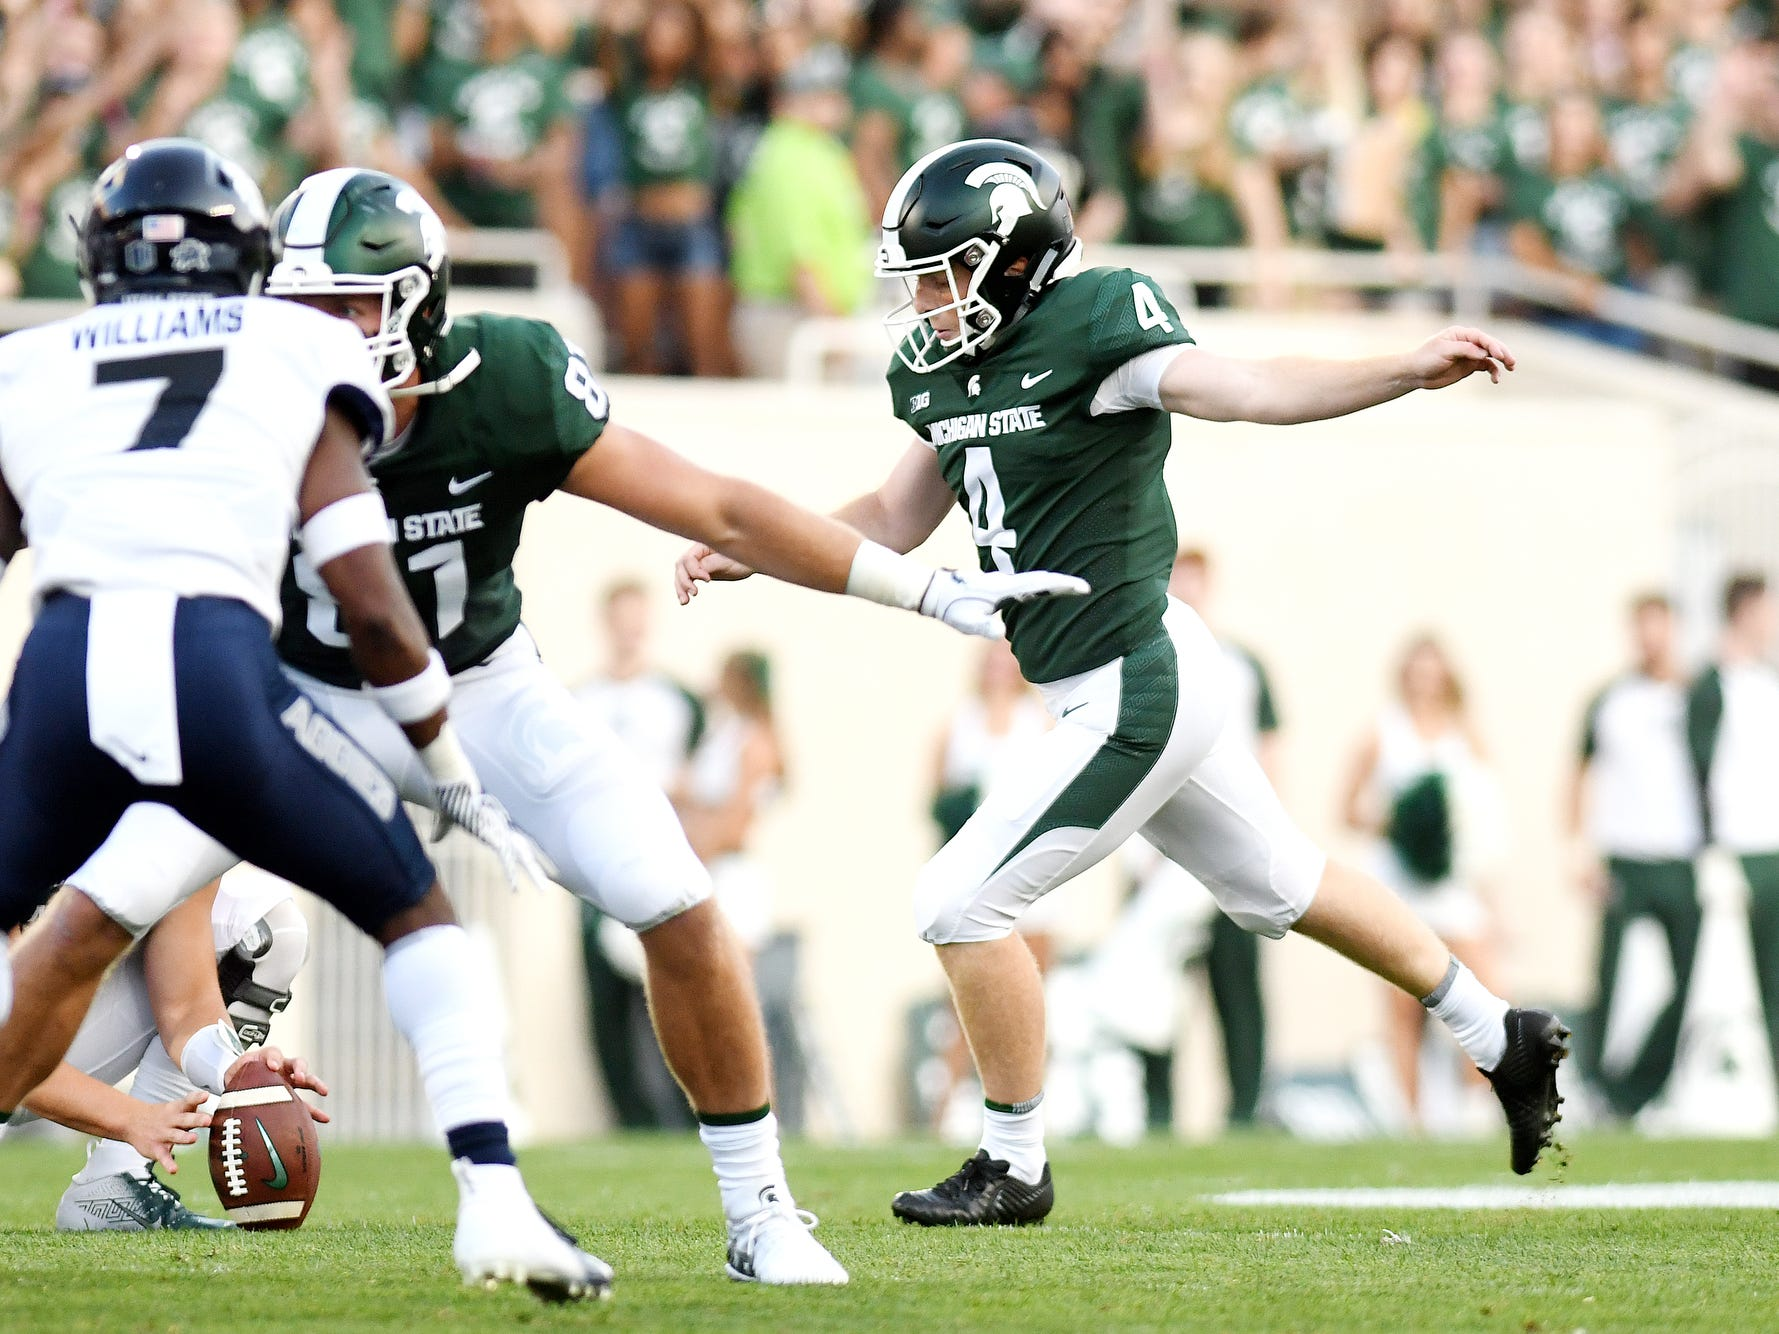 Michigan State's Matt Coghlin, right, kicks a field goal during the first quarter on Friday, Aug. 31, 2018, at Spartan Stadium in East Lansing.